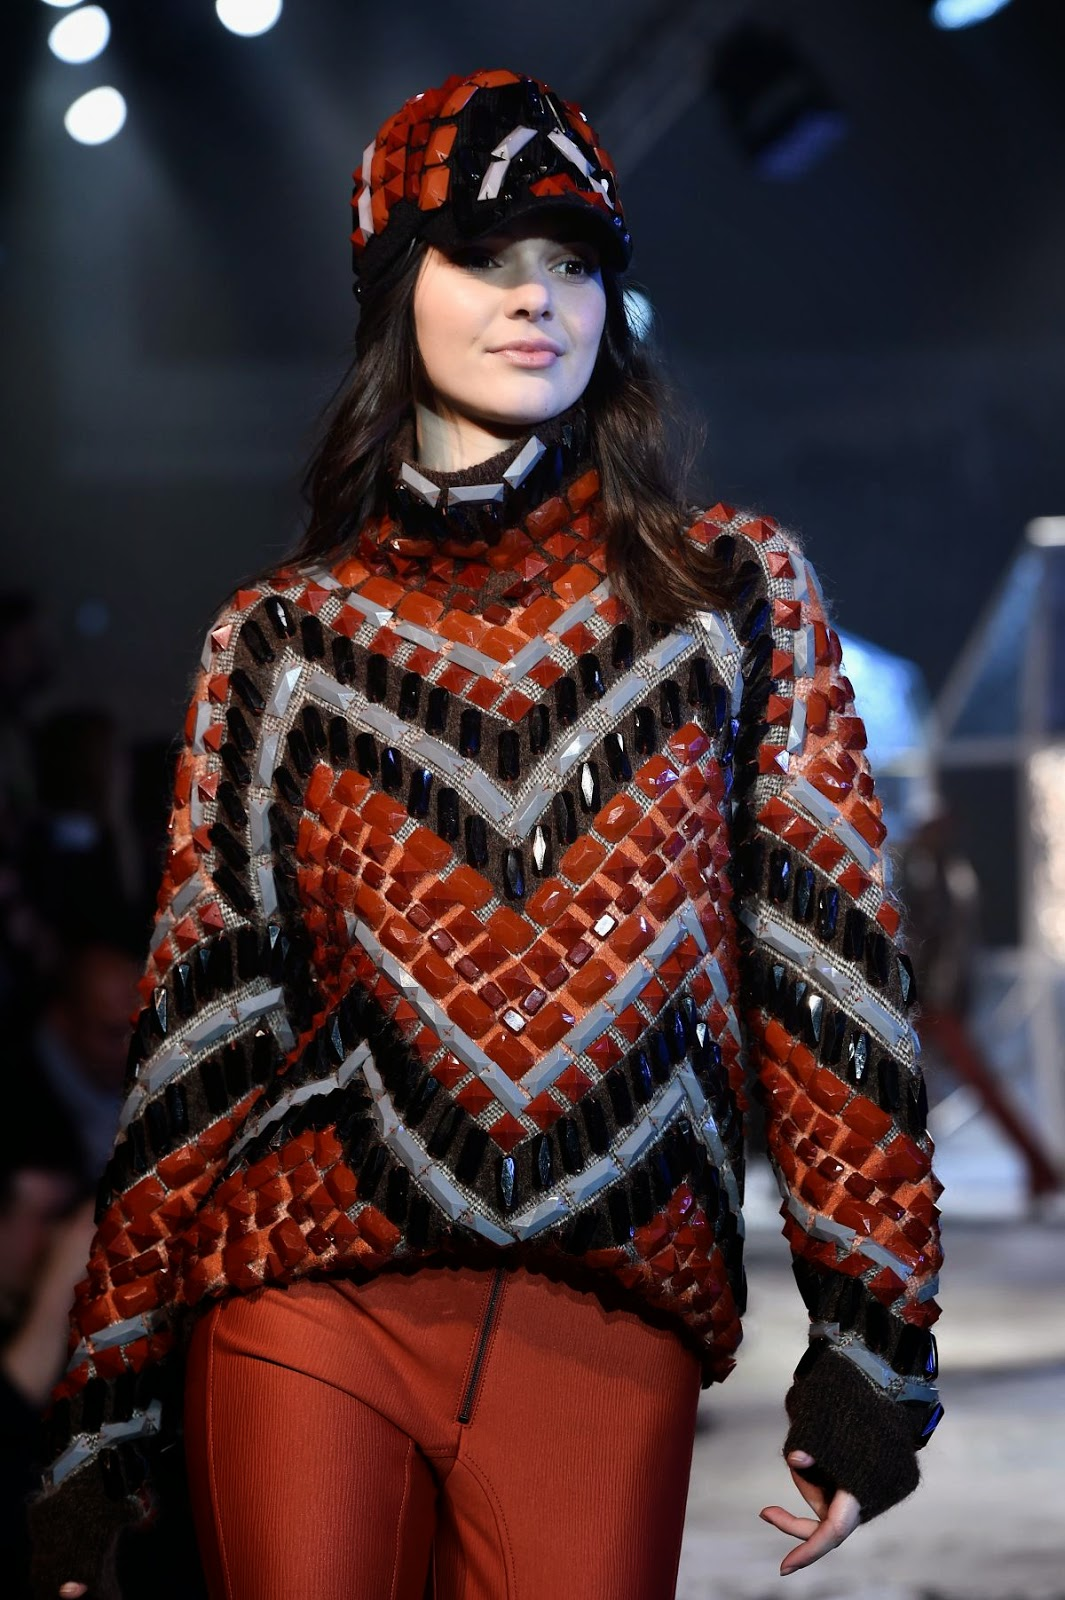 Fashion Model, Actress,Broadcasters @ Kendall Jenner At H&M Fashion Show In Paris